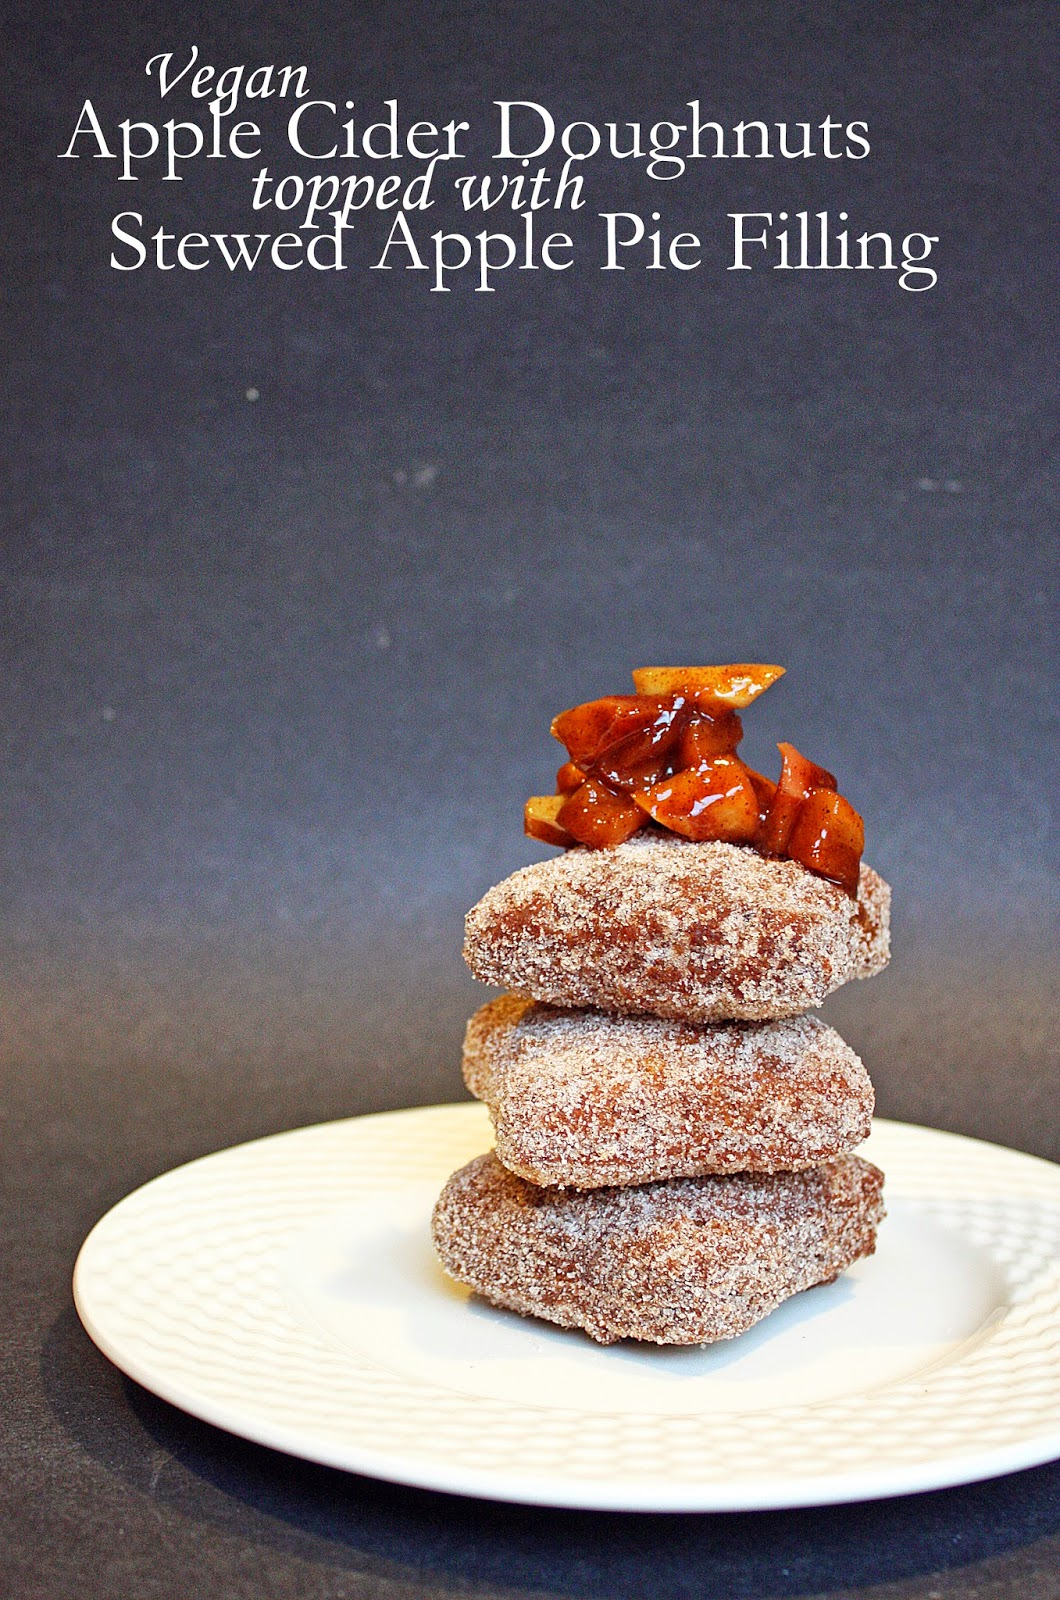 Vegan apple cider doughnuts with stewed apple pie filling